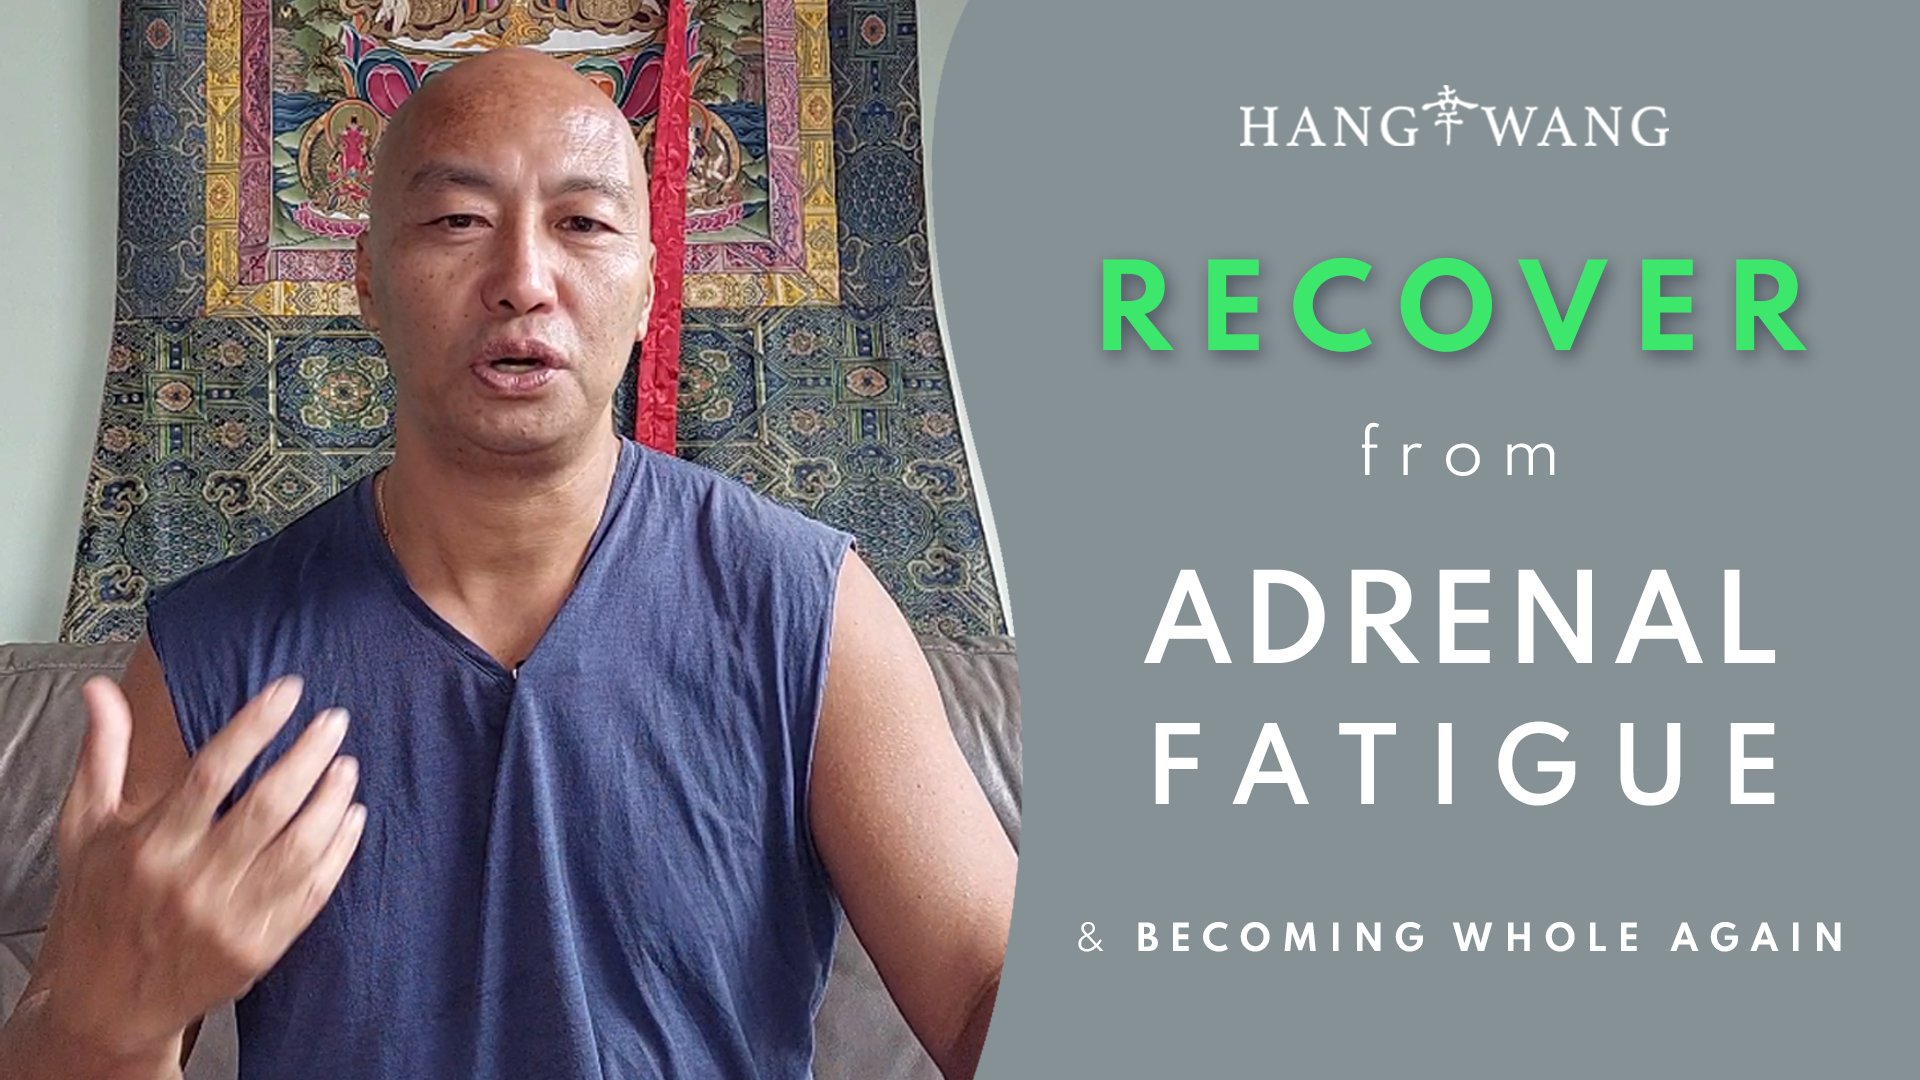 How to Become Whole Again – Recovering from Adrenal Fatigue